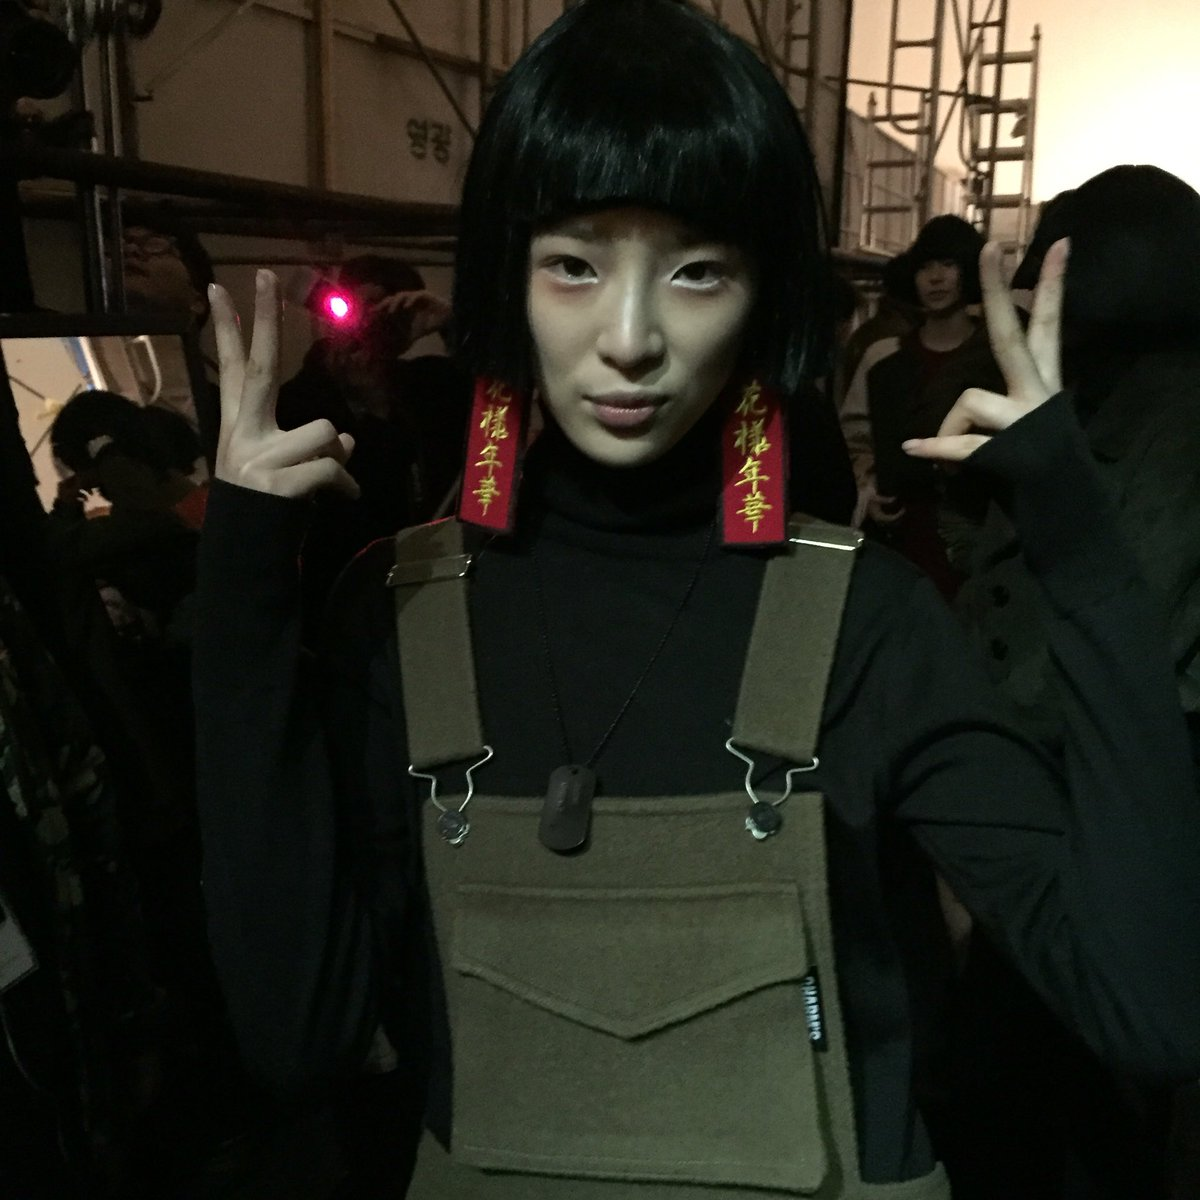 Beauty @ireneisgood backstage @ #Charms show substituting a black wig to her usual rainbow hair! #Seoulfashionweek https://t.co/9r5LN9N5o8